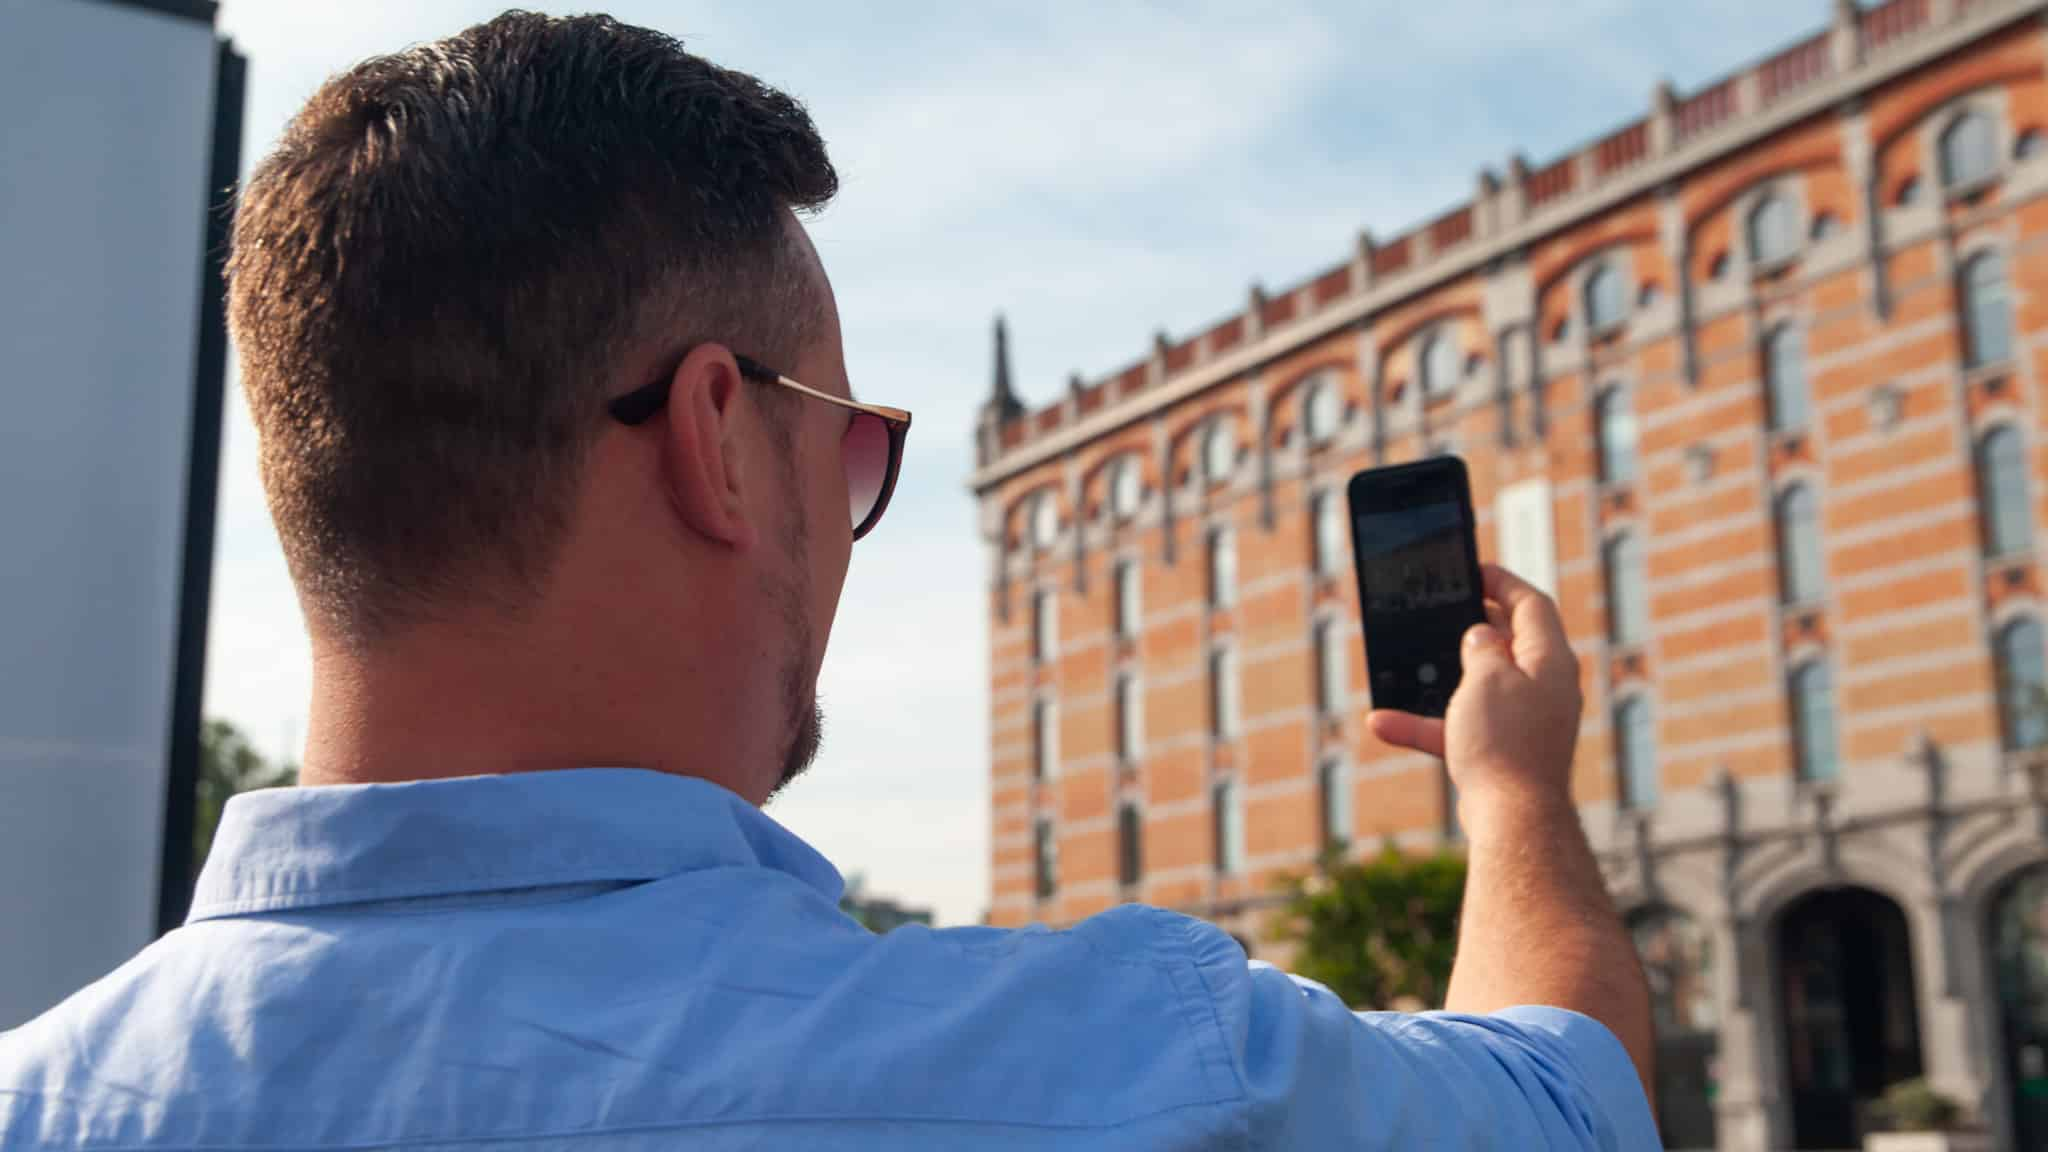 Dan using a mobile phone to take a photo in Brussels